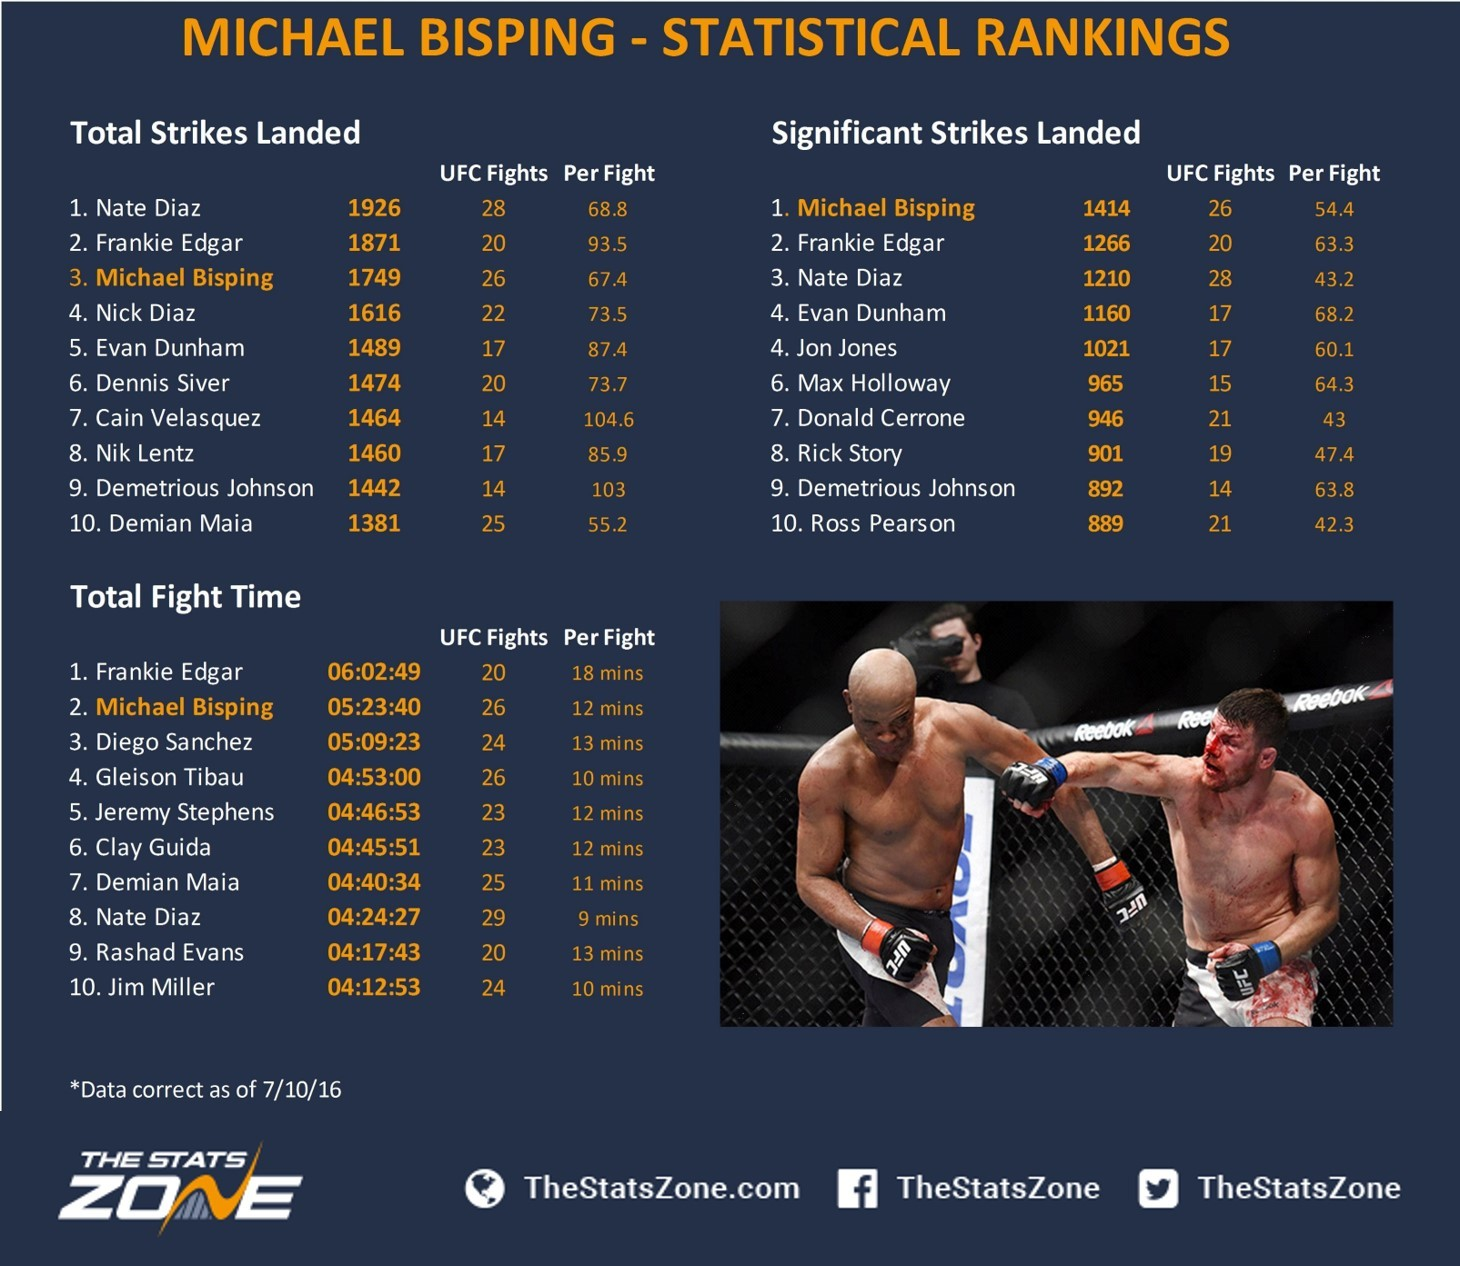 Michael Bisping rankings